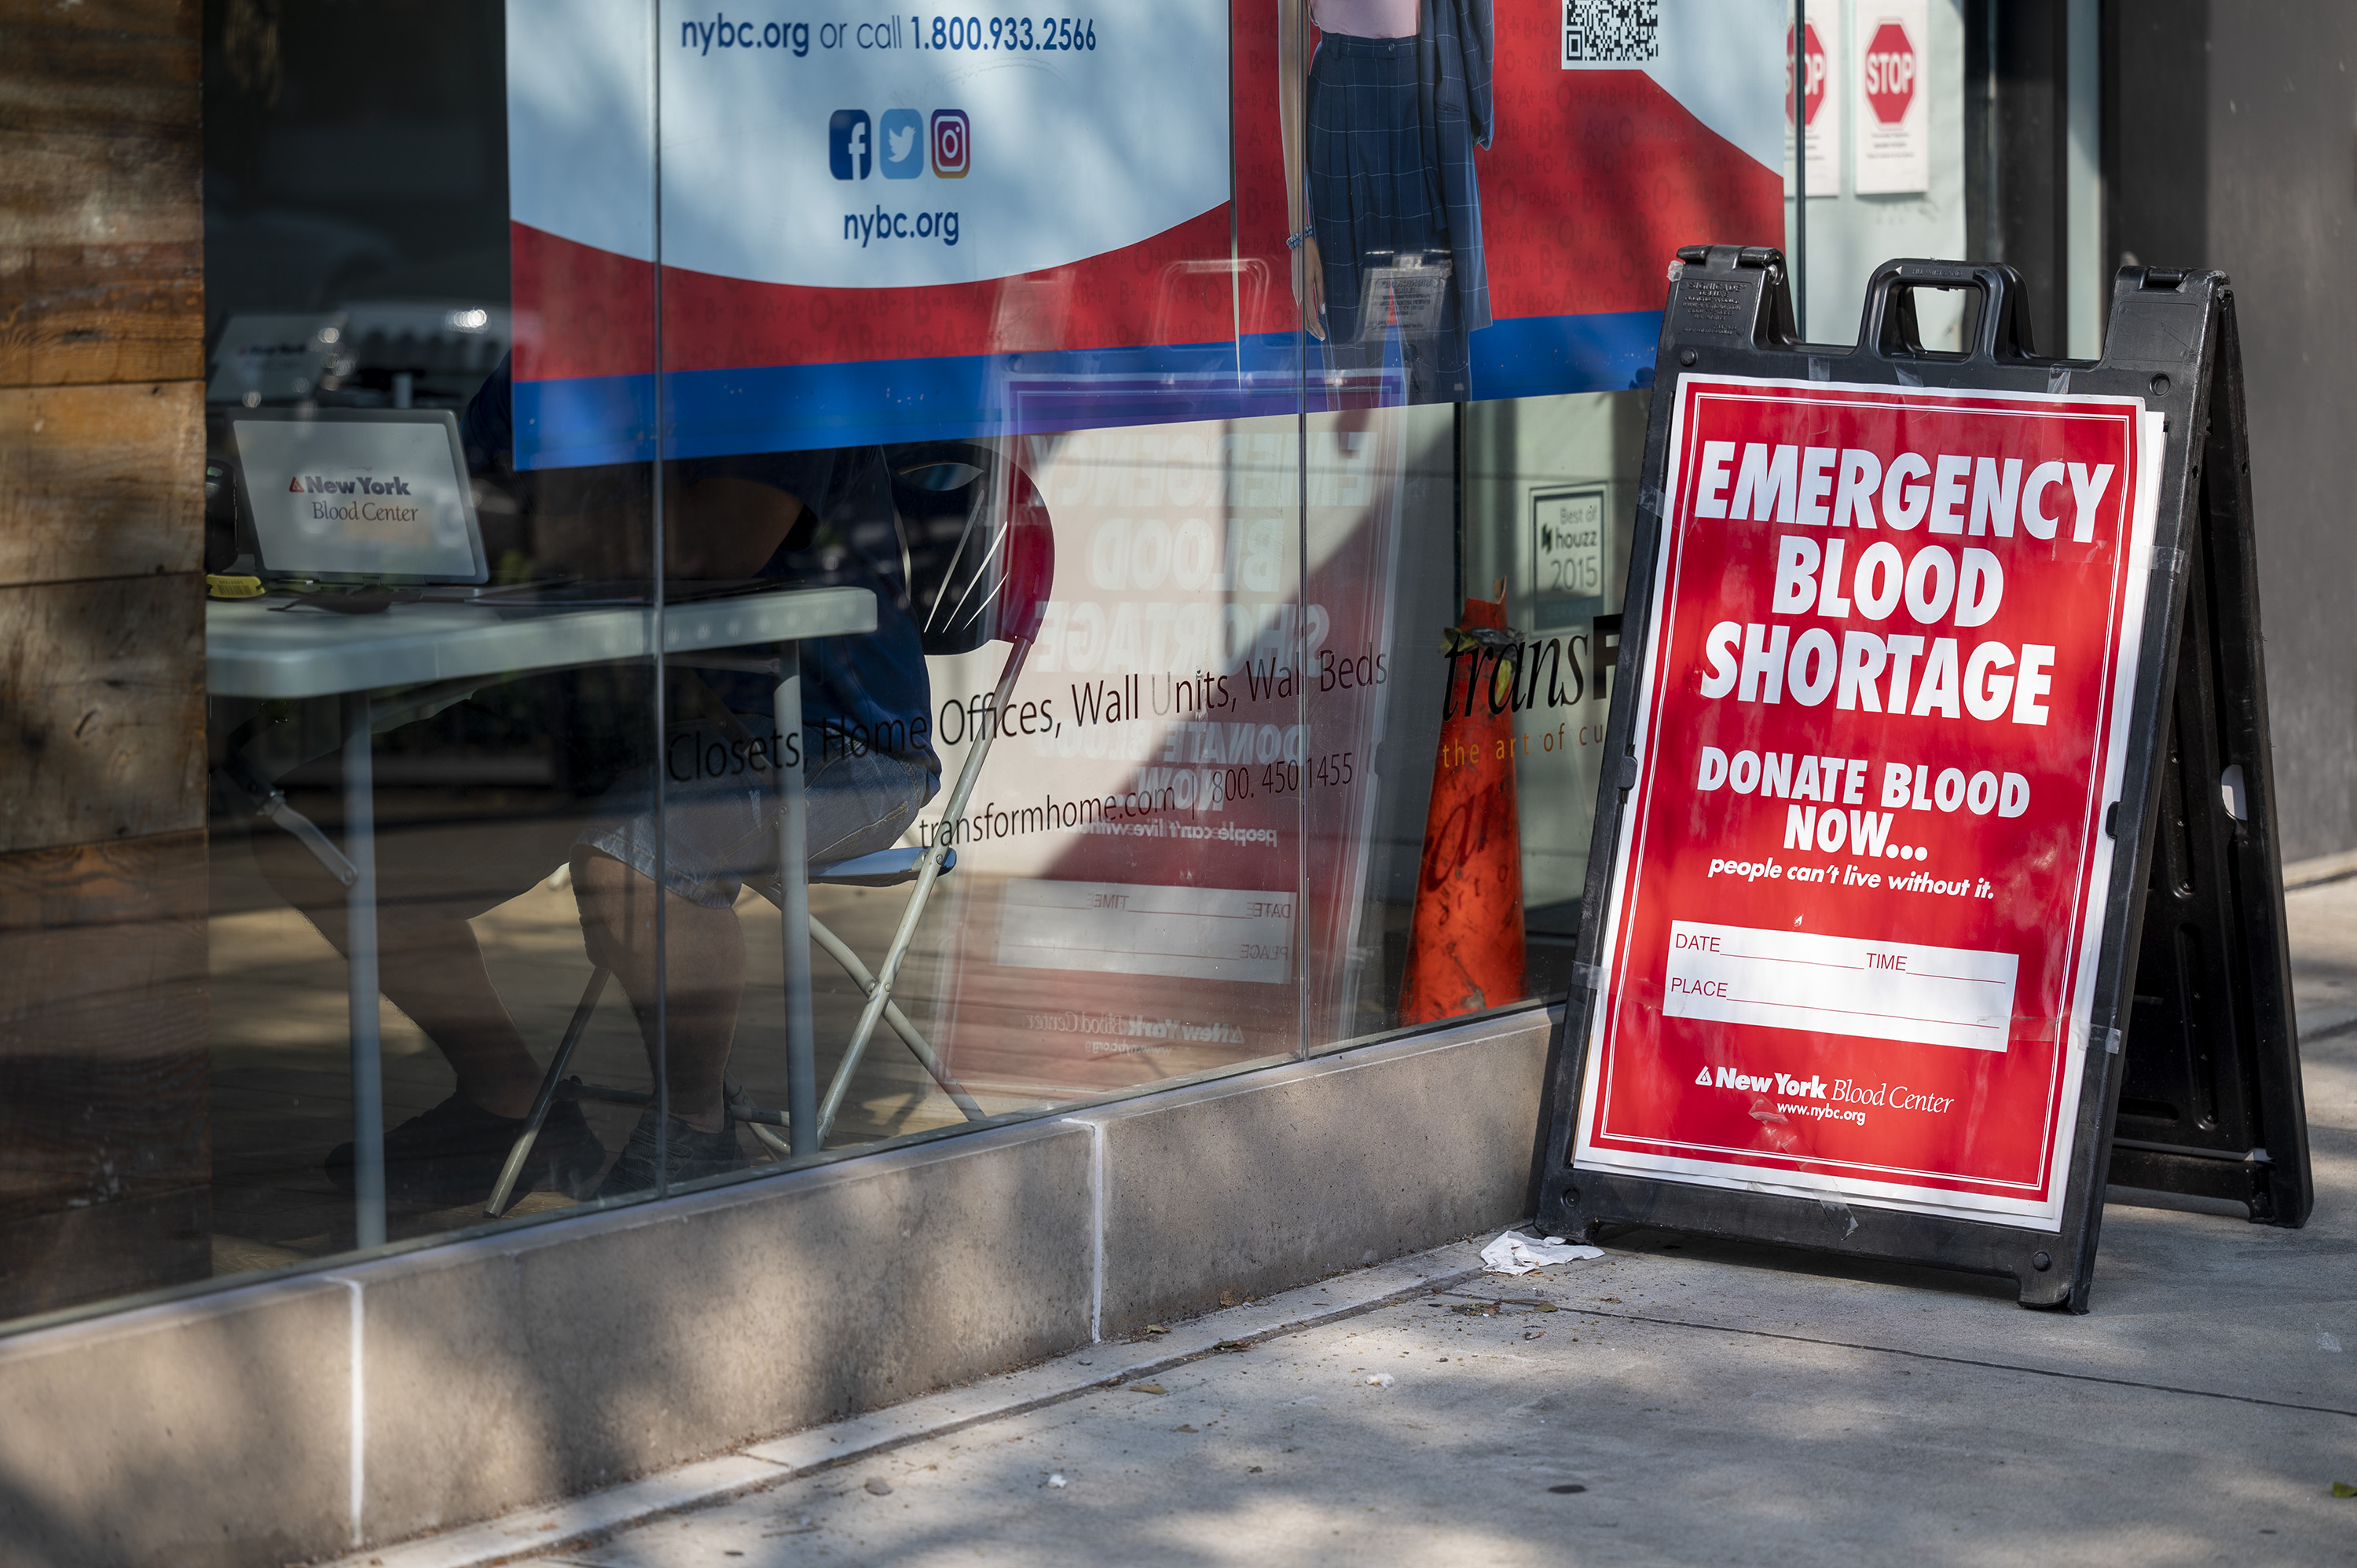 New York Blood Center is urging donations, including at a new center in downtown Brooklyn.